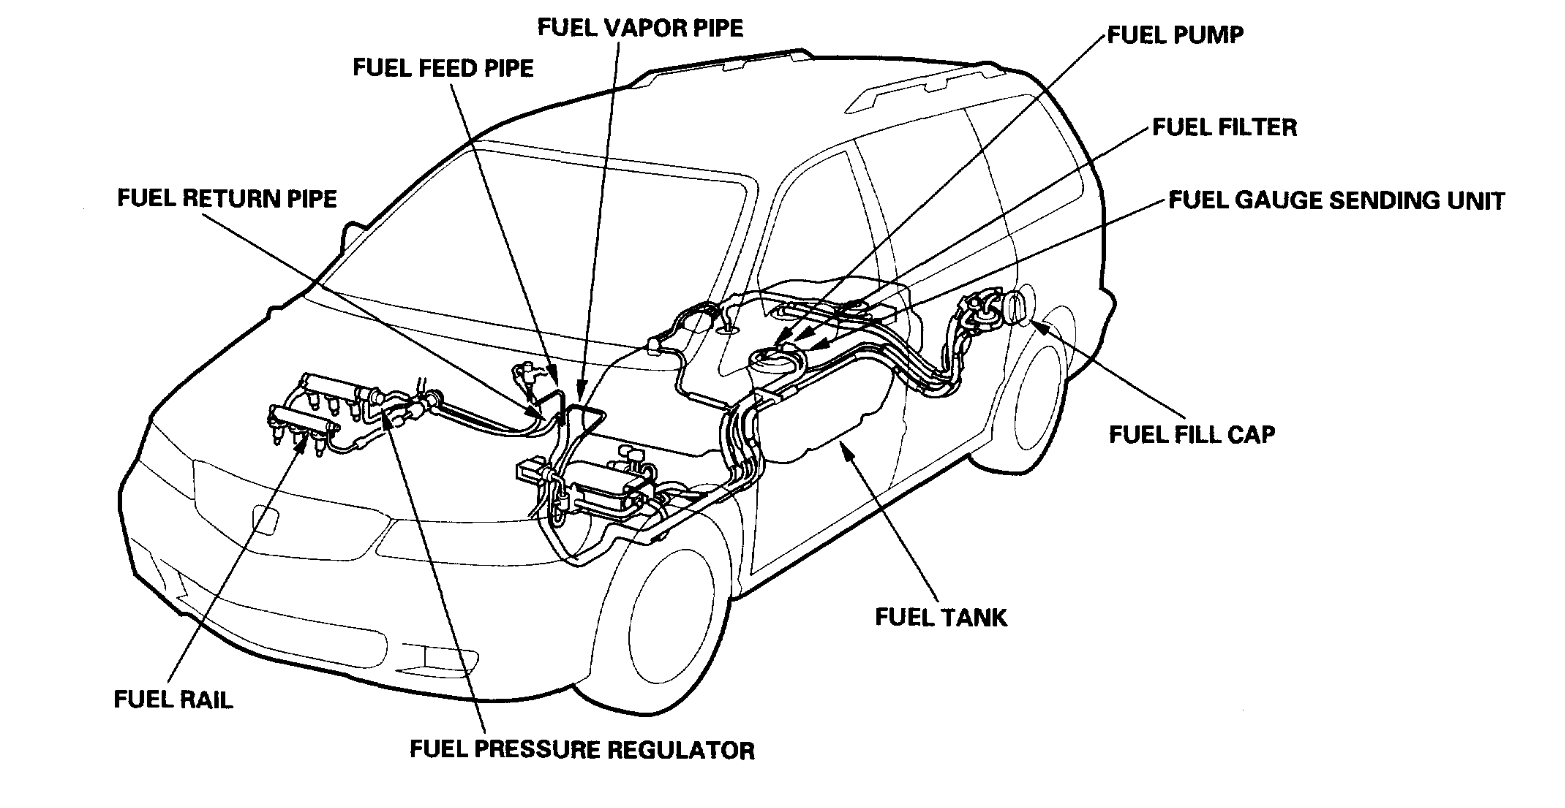 hight resolution of honda odyssey fuel system wiring diagram wiring diagram expert 2000 honda odyssey fuel wiring